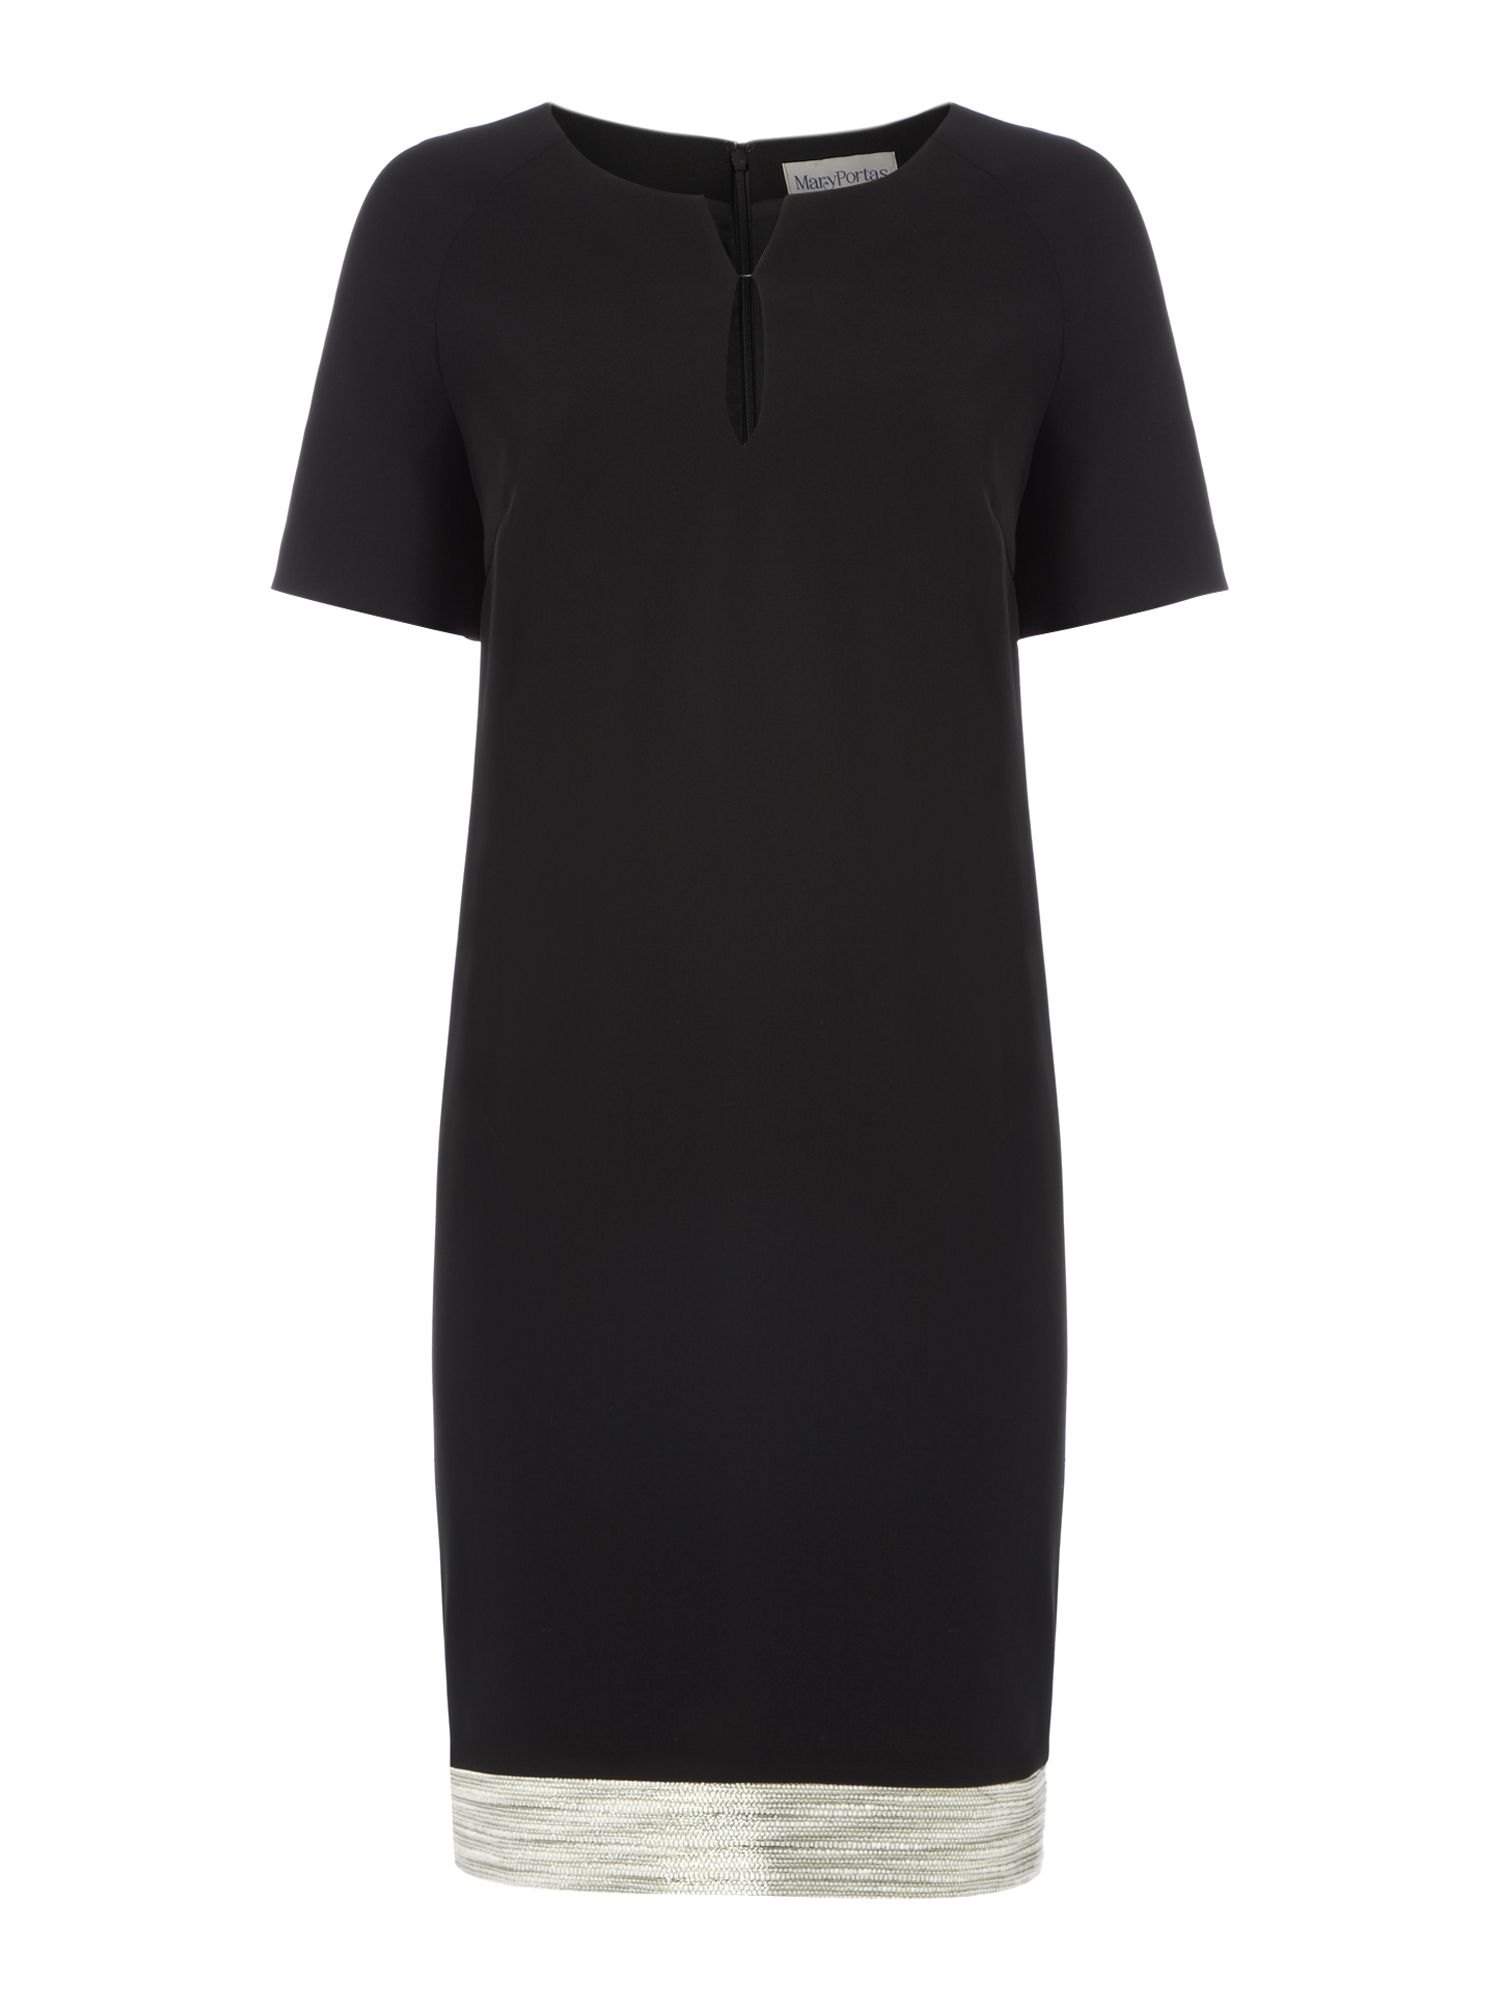 The slim and skim dress